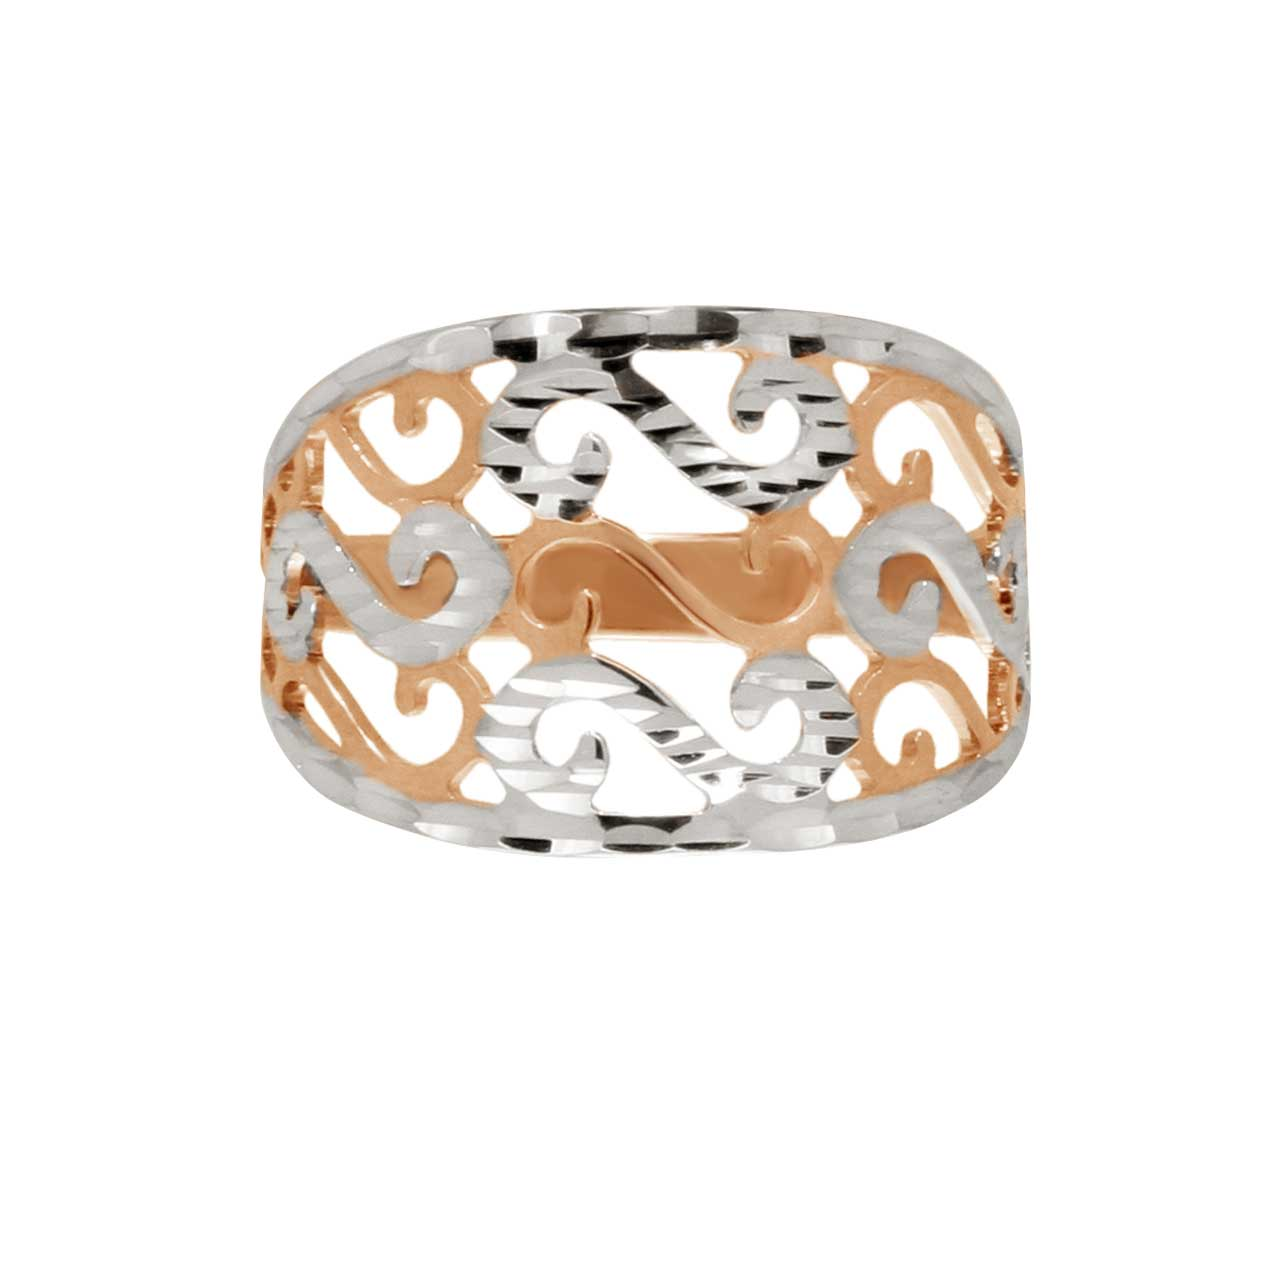 Rose Gold Ring with Cutwork Accents. View 2